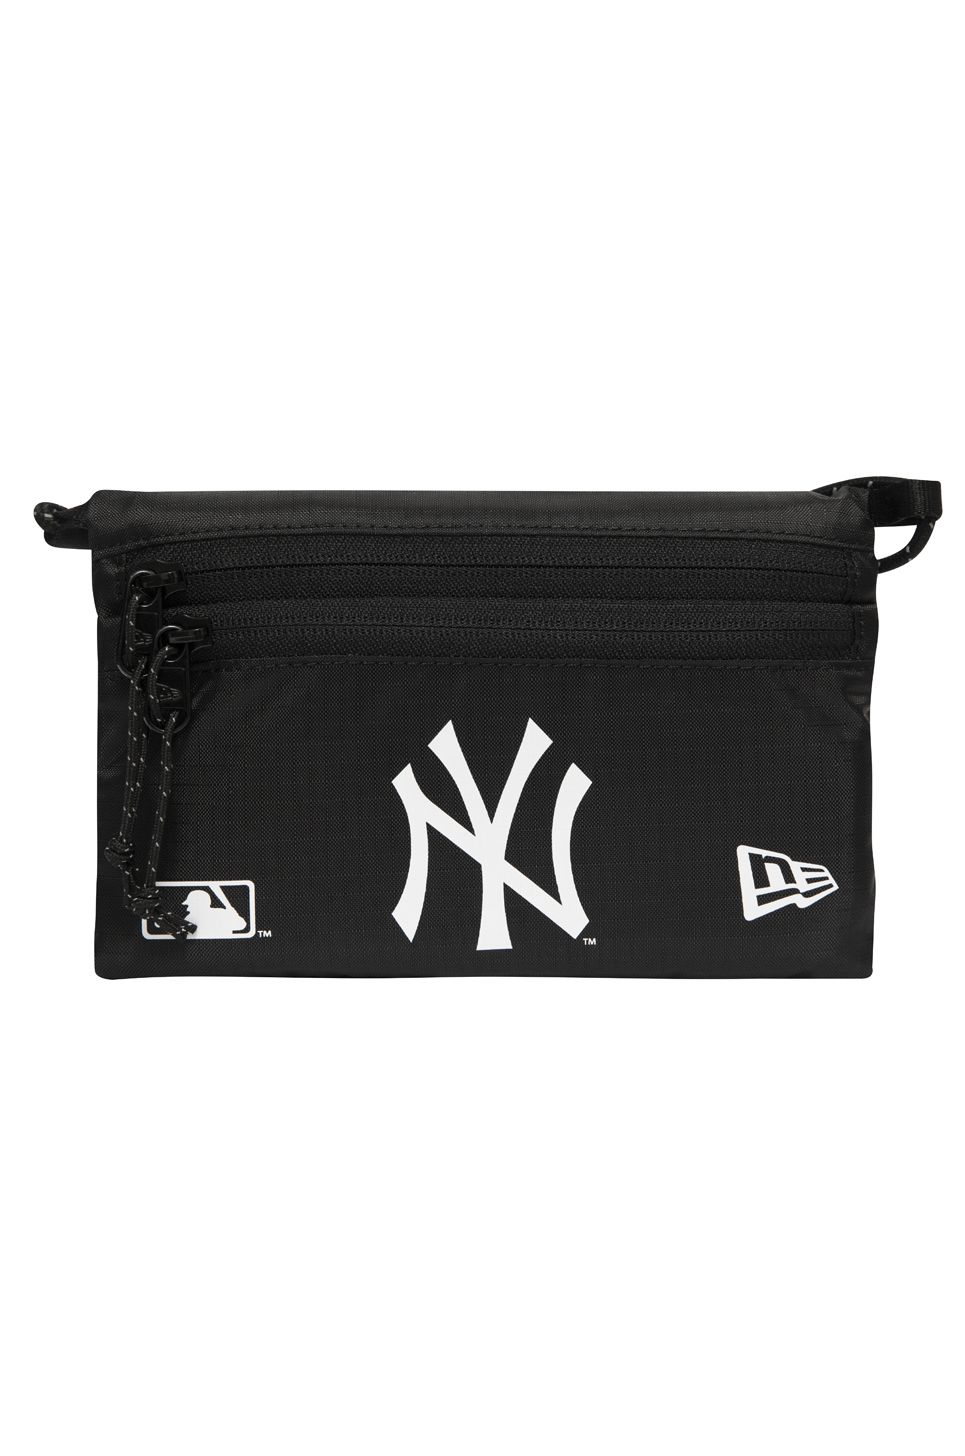 Bolsa New Era MLB SACOCHE MINI SIDE BAG NEYYAN Black